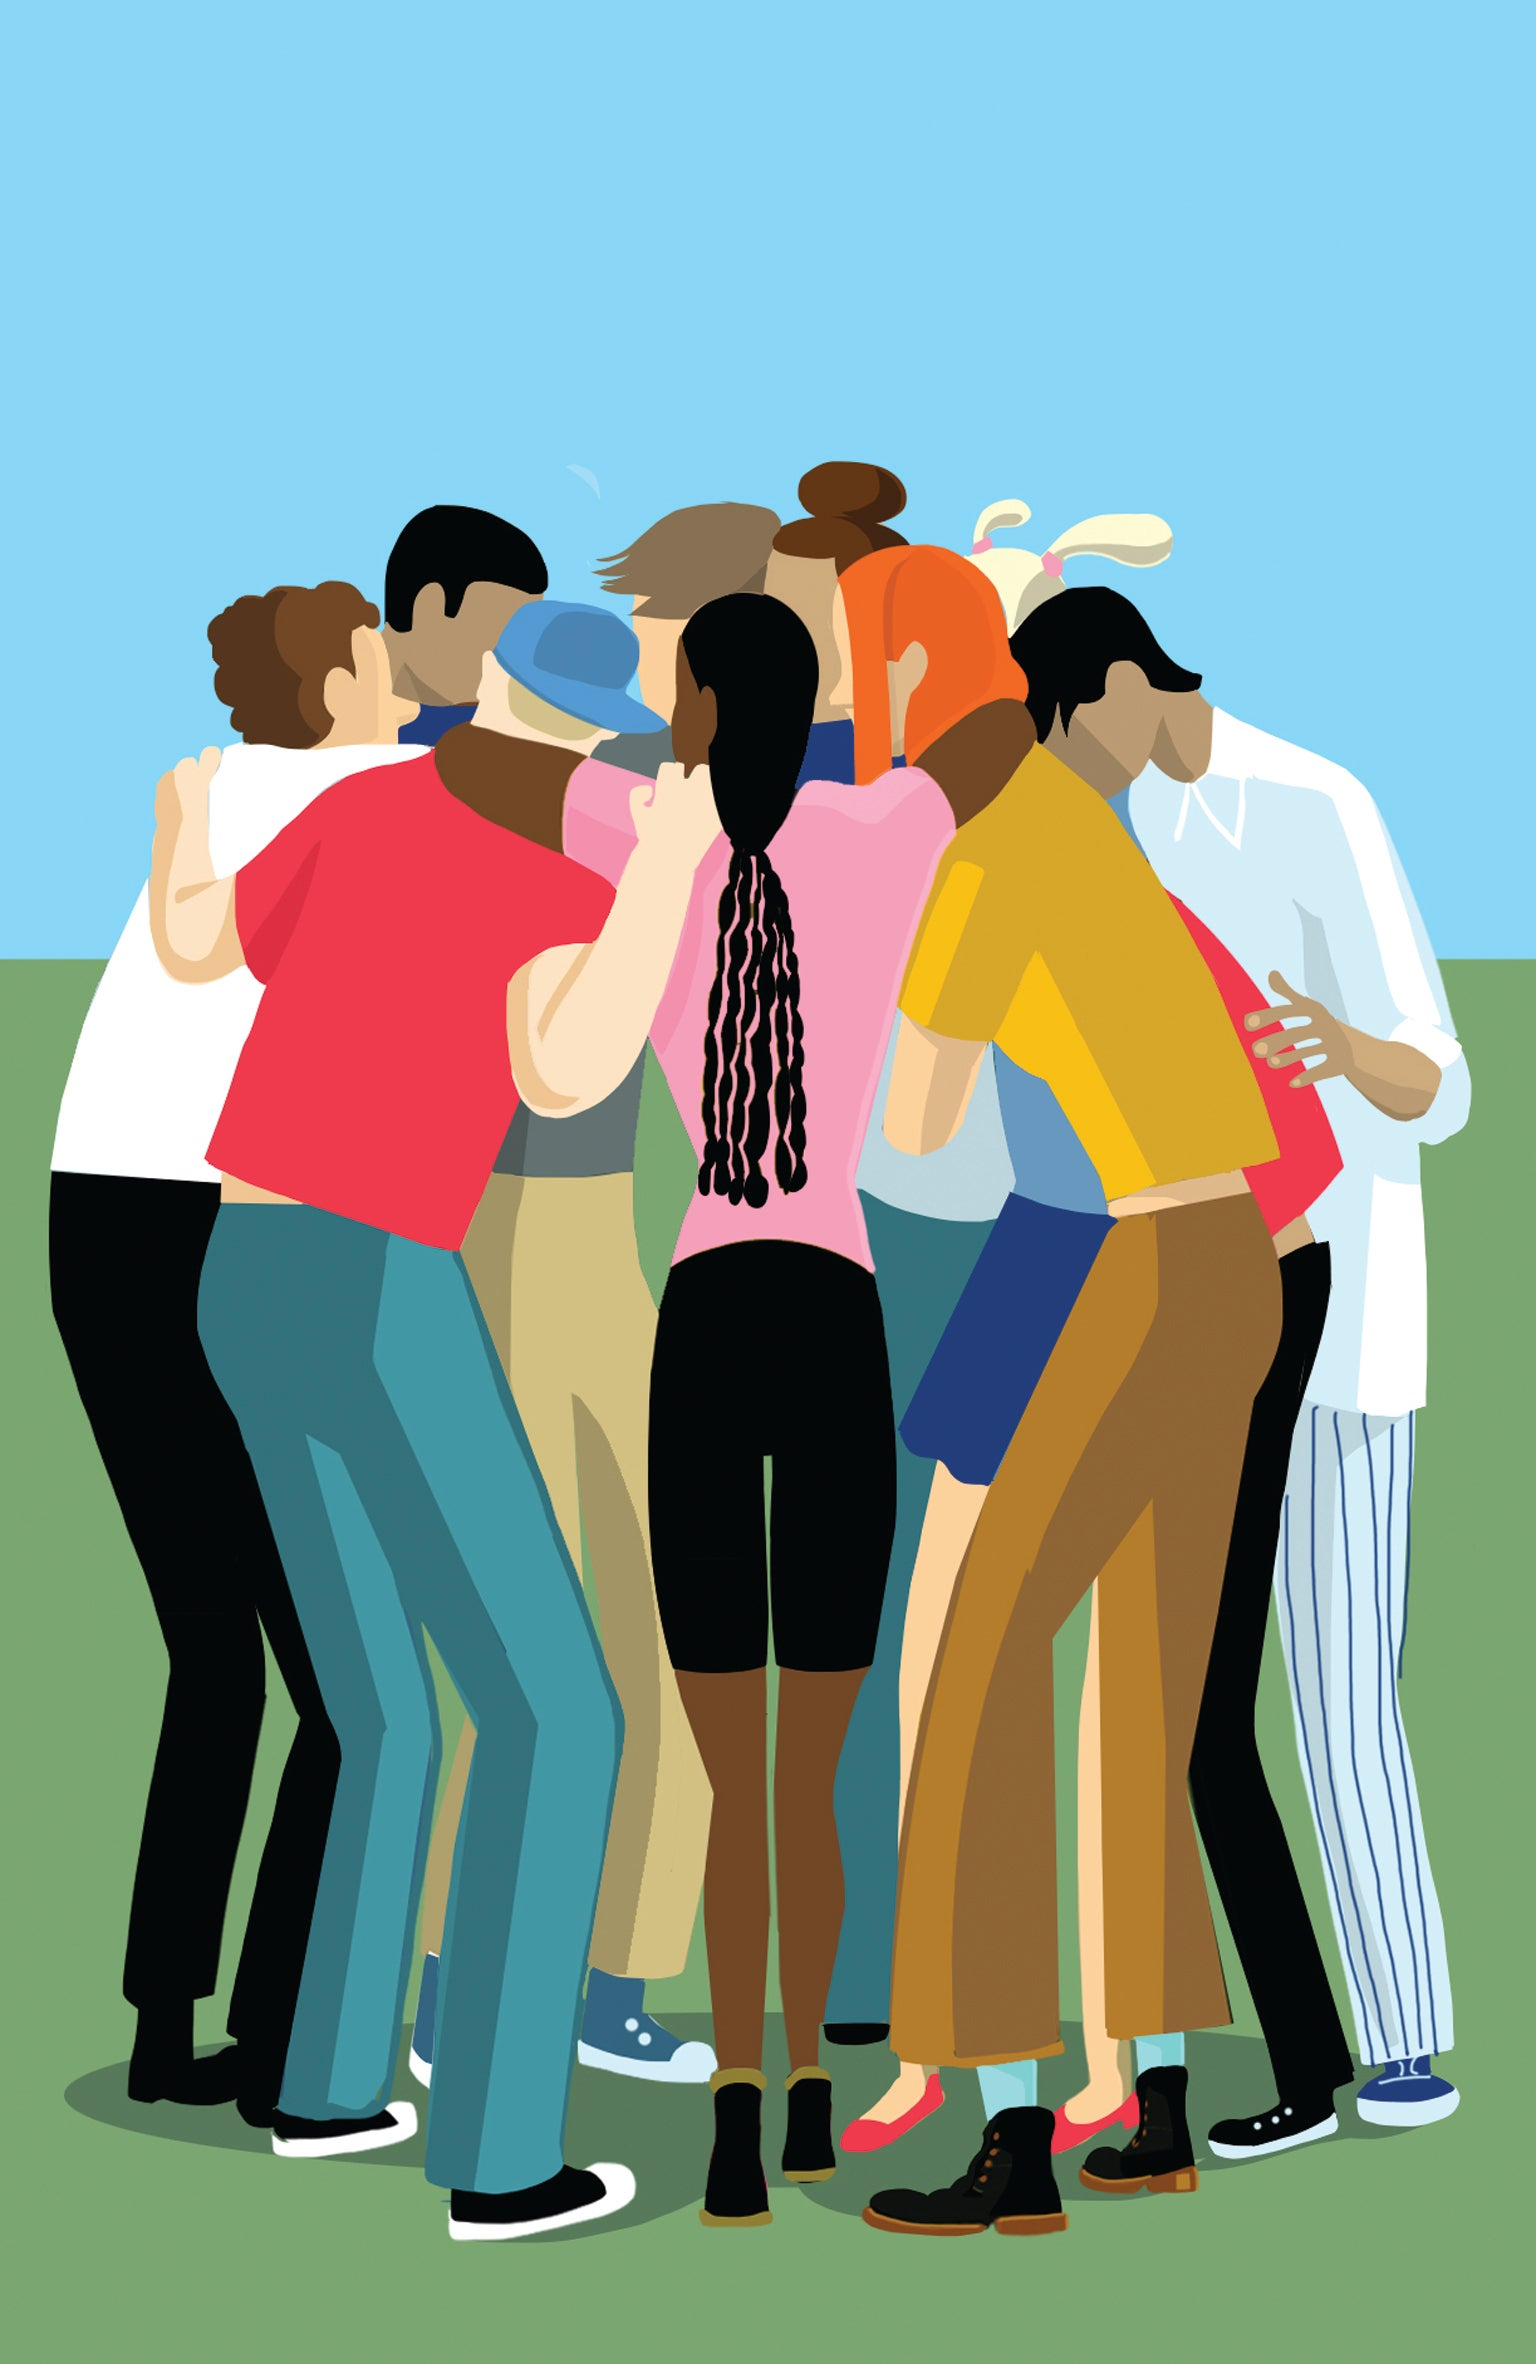 Group of adolescents hugging each other art concept.